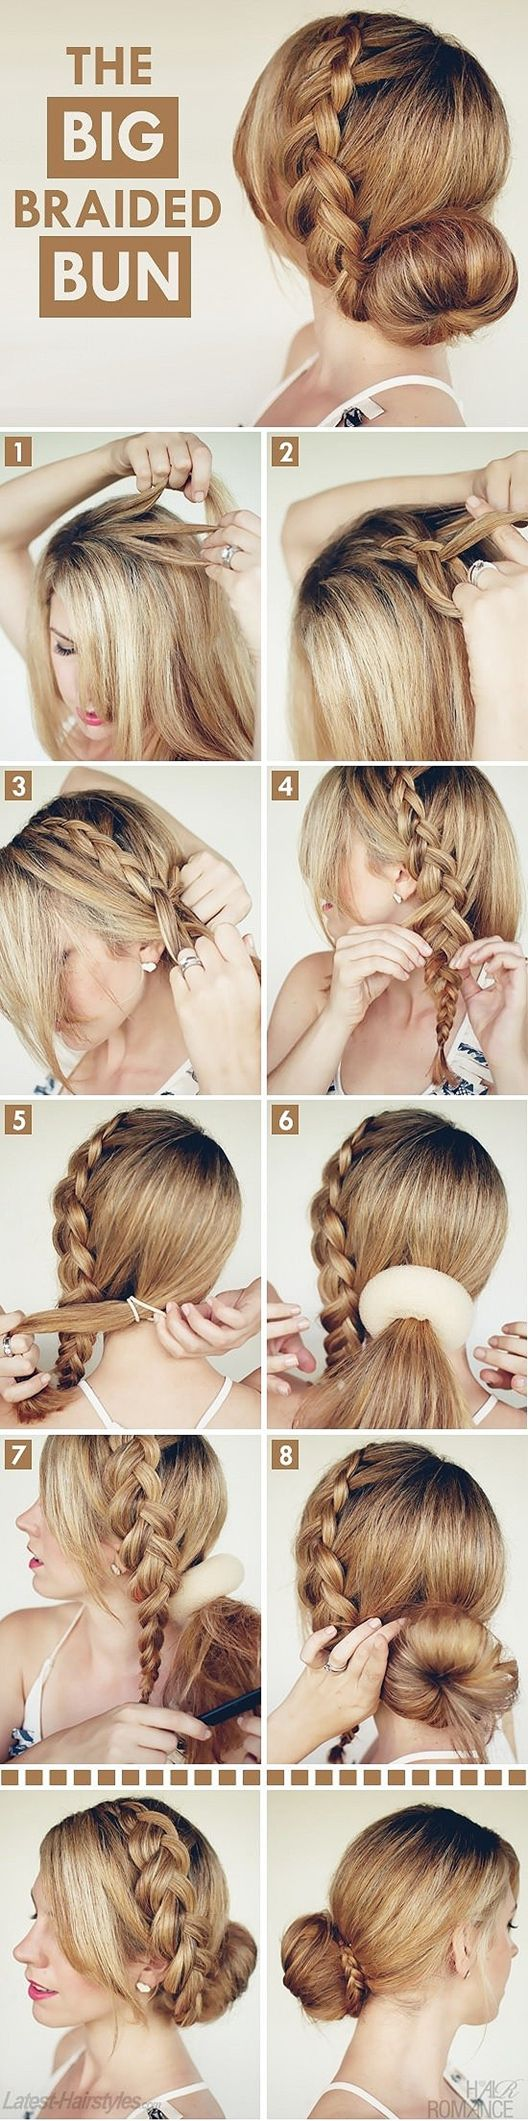 hair styles for long hair: